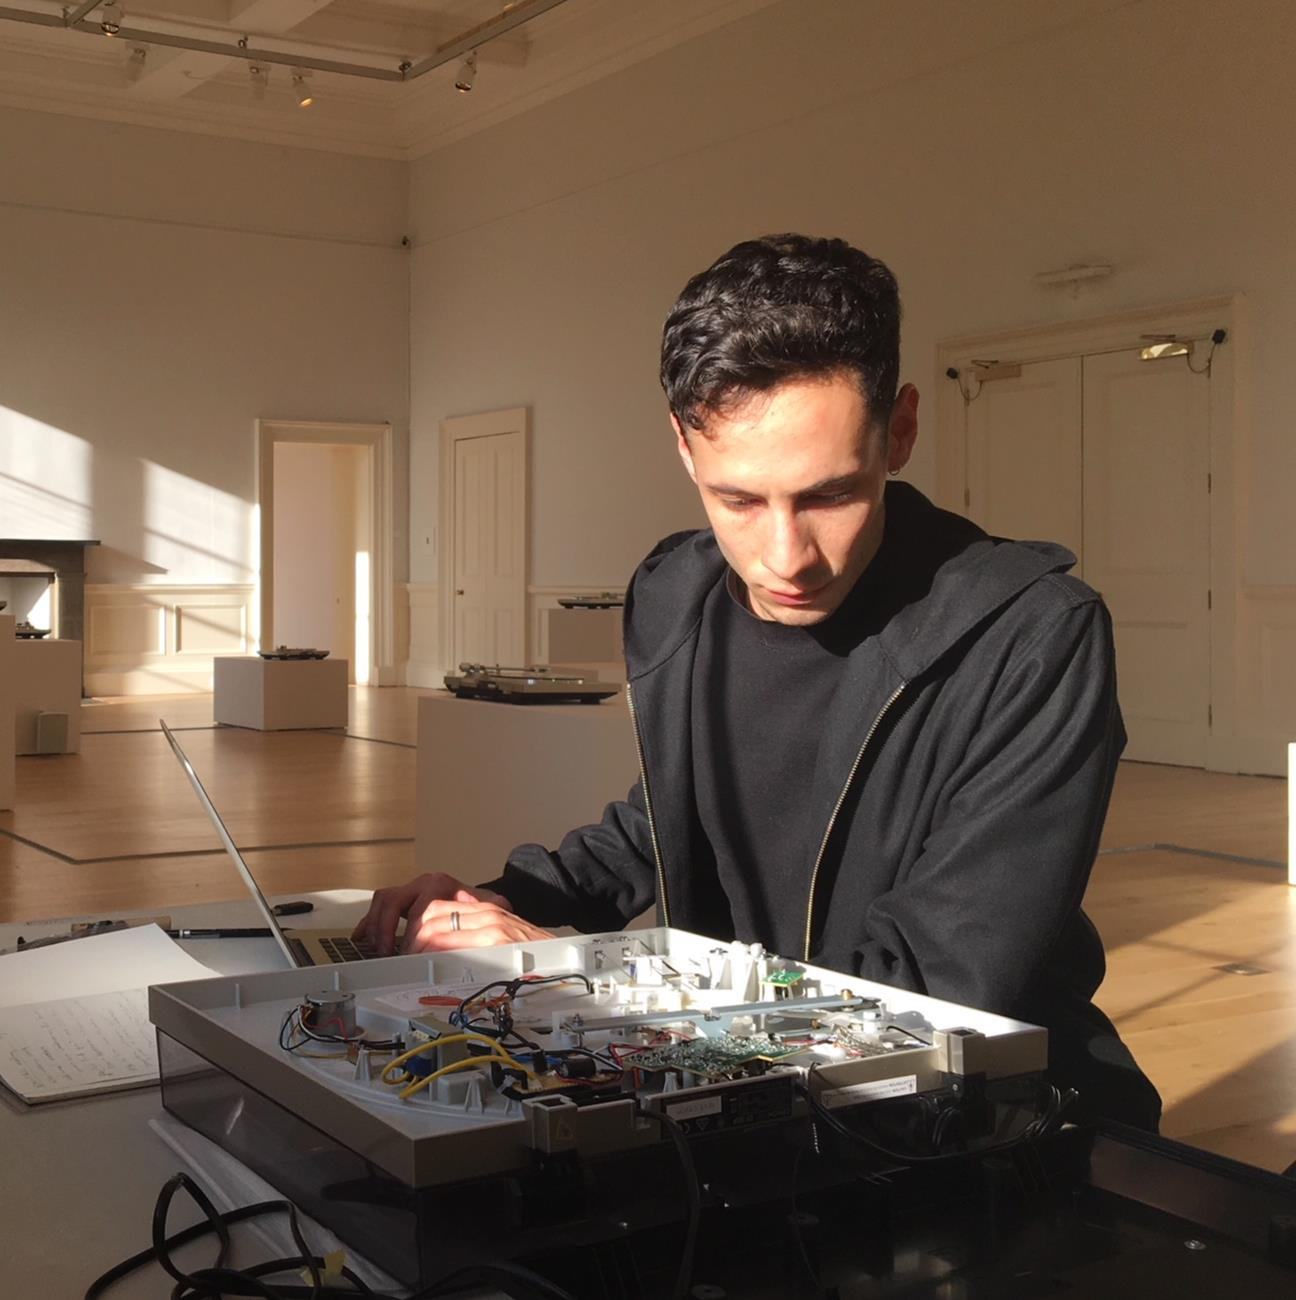 Brian Castriota documenting artist-modified turntables for an installation art work at the Scottish National Gallery of Modern Art